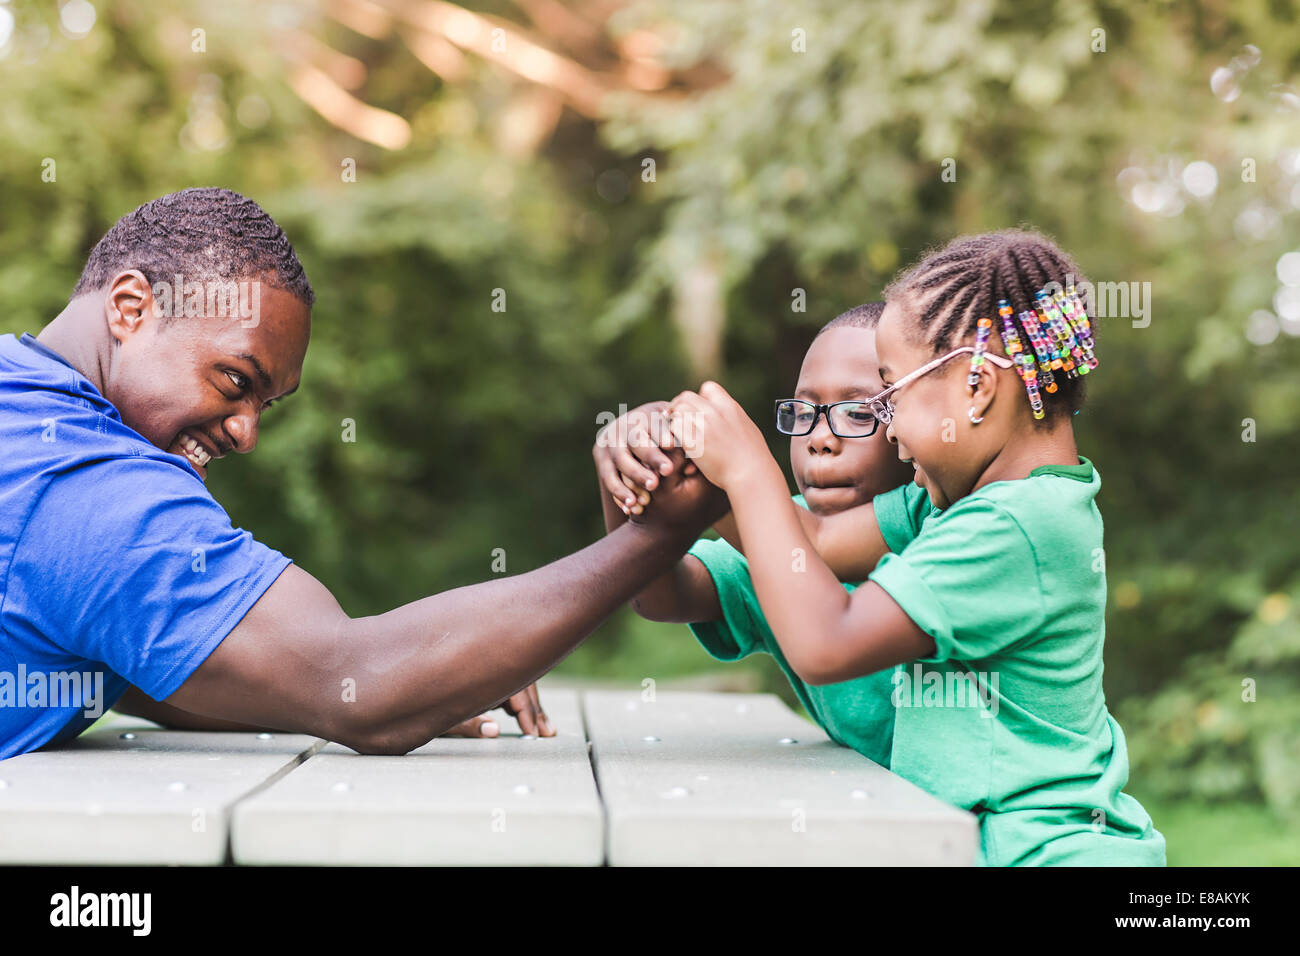 Father arm wrestling with daughter at parkland eco camp - Stock Image